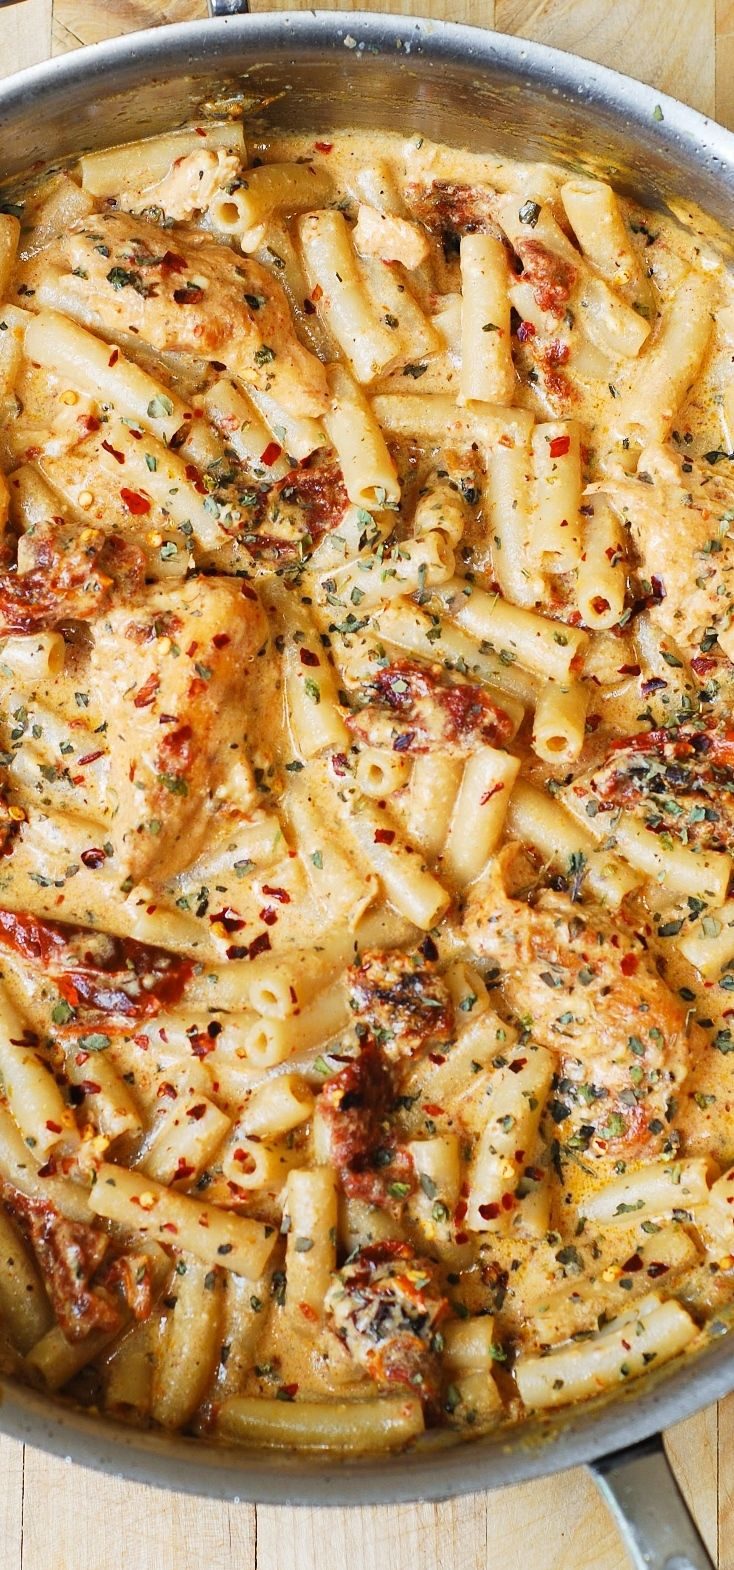 Chicken with sun-dried tomatoes and penne pasta in a creamy mozzarella cheese sauce seasoned with basil, crushed red pepper flakes. #recipe #chicken #pasta